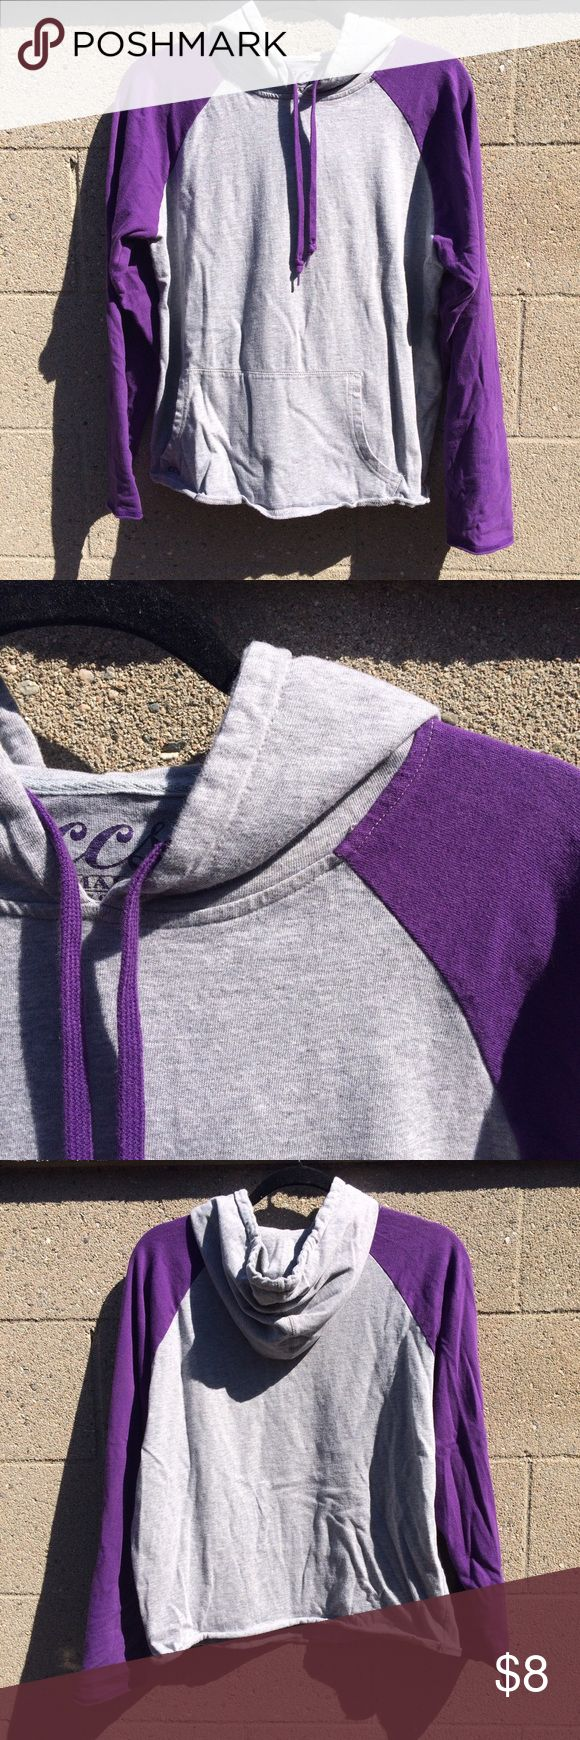 Baseball Tee Lightweight Hoodie Gray and purple color. Great condition. From a skate clothing brand called CCS, I don't remember if it was women's or men's size, I presume it's unisex because I'm a women's size small and it fits perfectly. Long sleeve. Hoodie with adjustable strings. Double sided front pocket. Lightweight sweater top. Tops